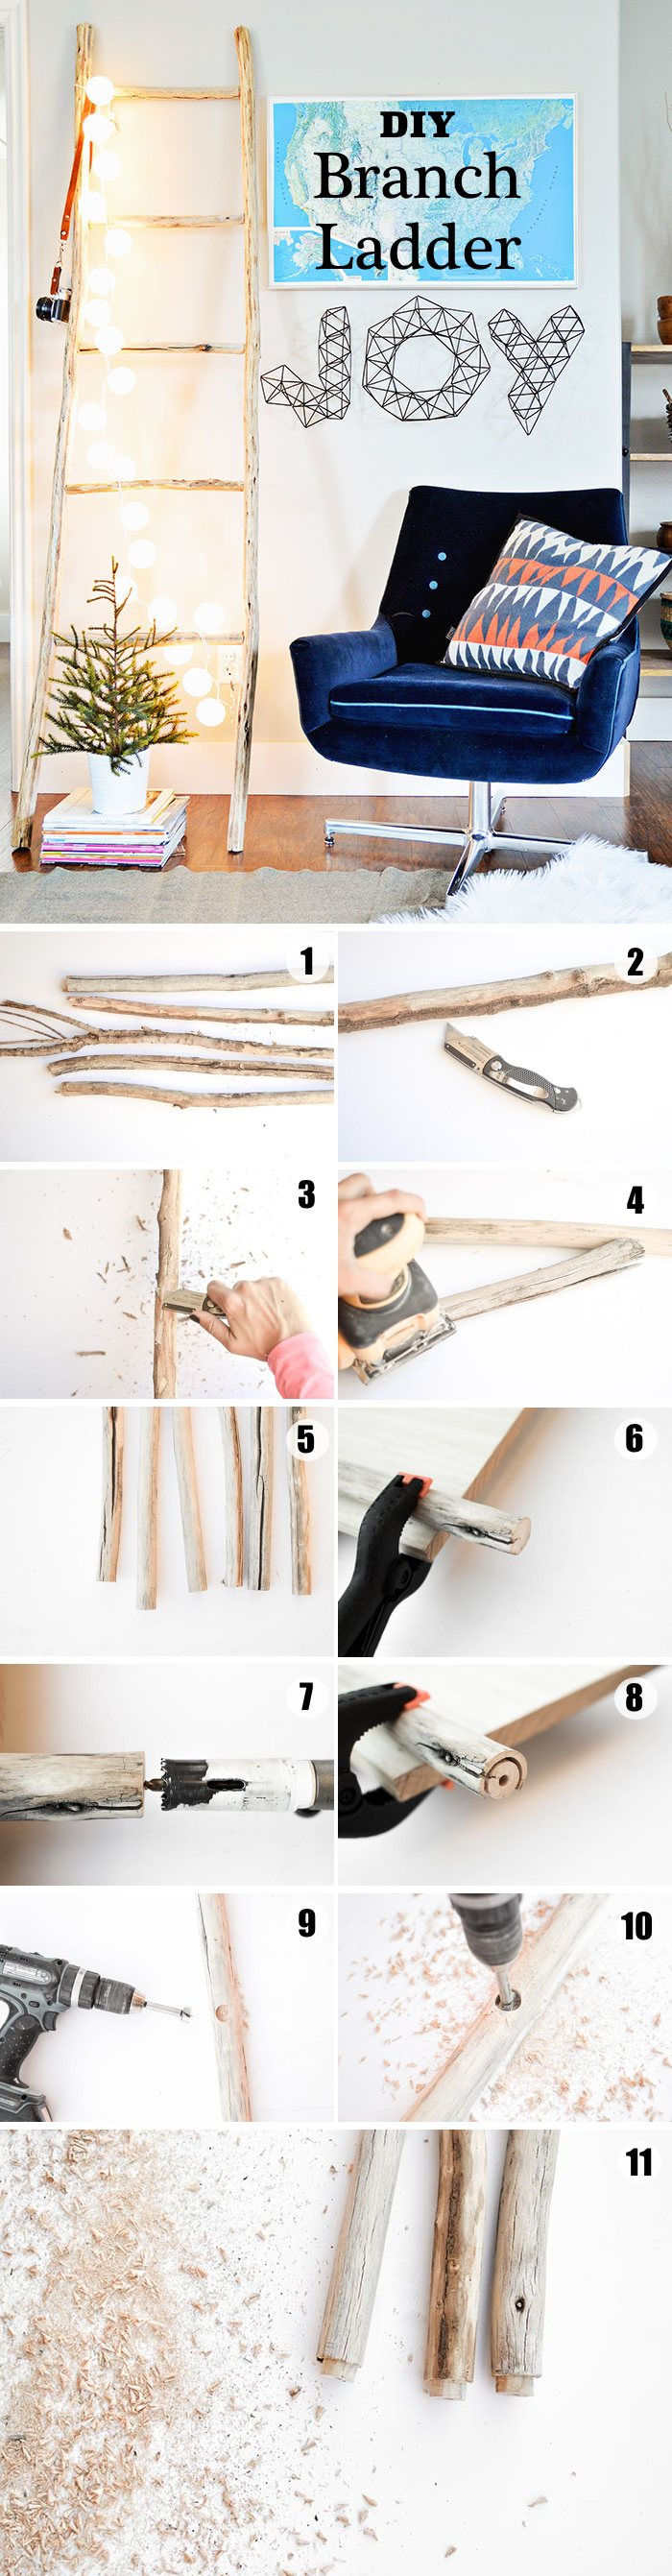 DIY Branch Ladder